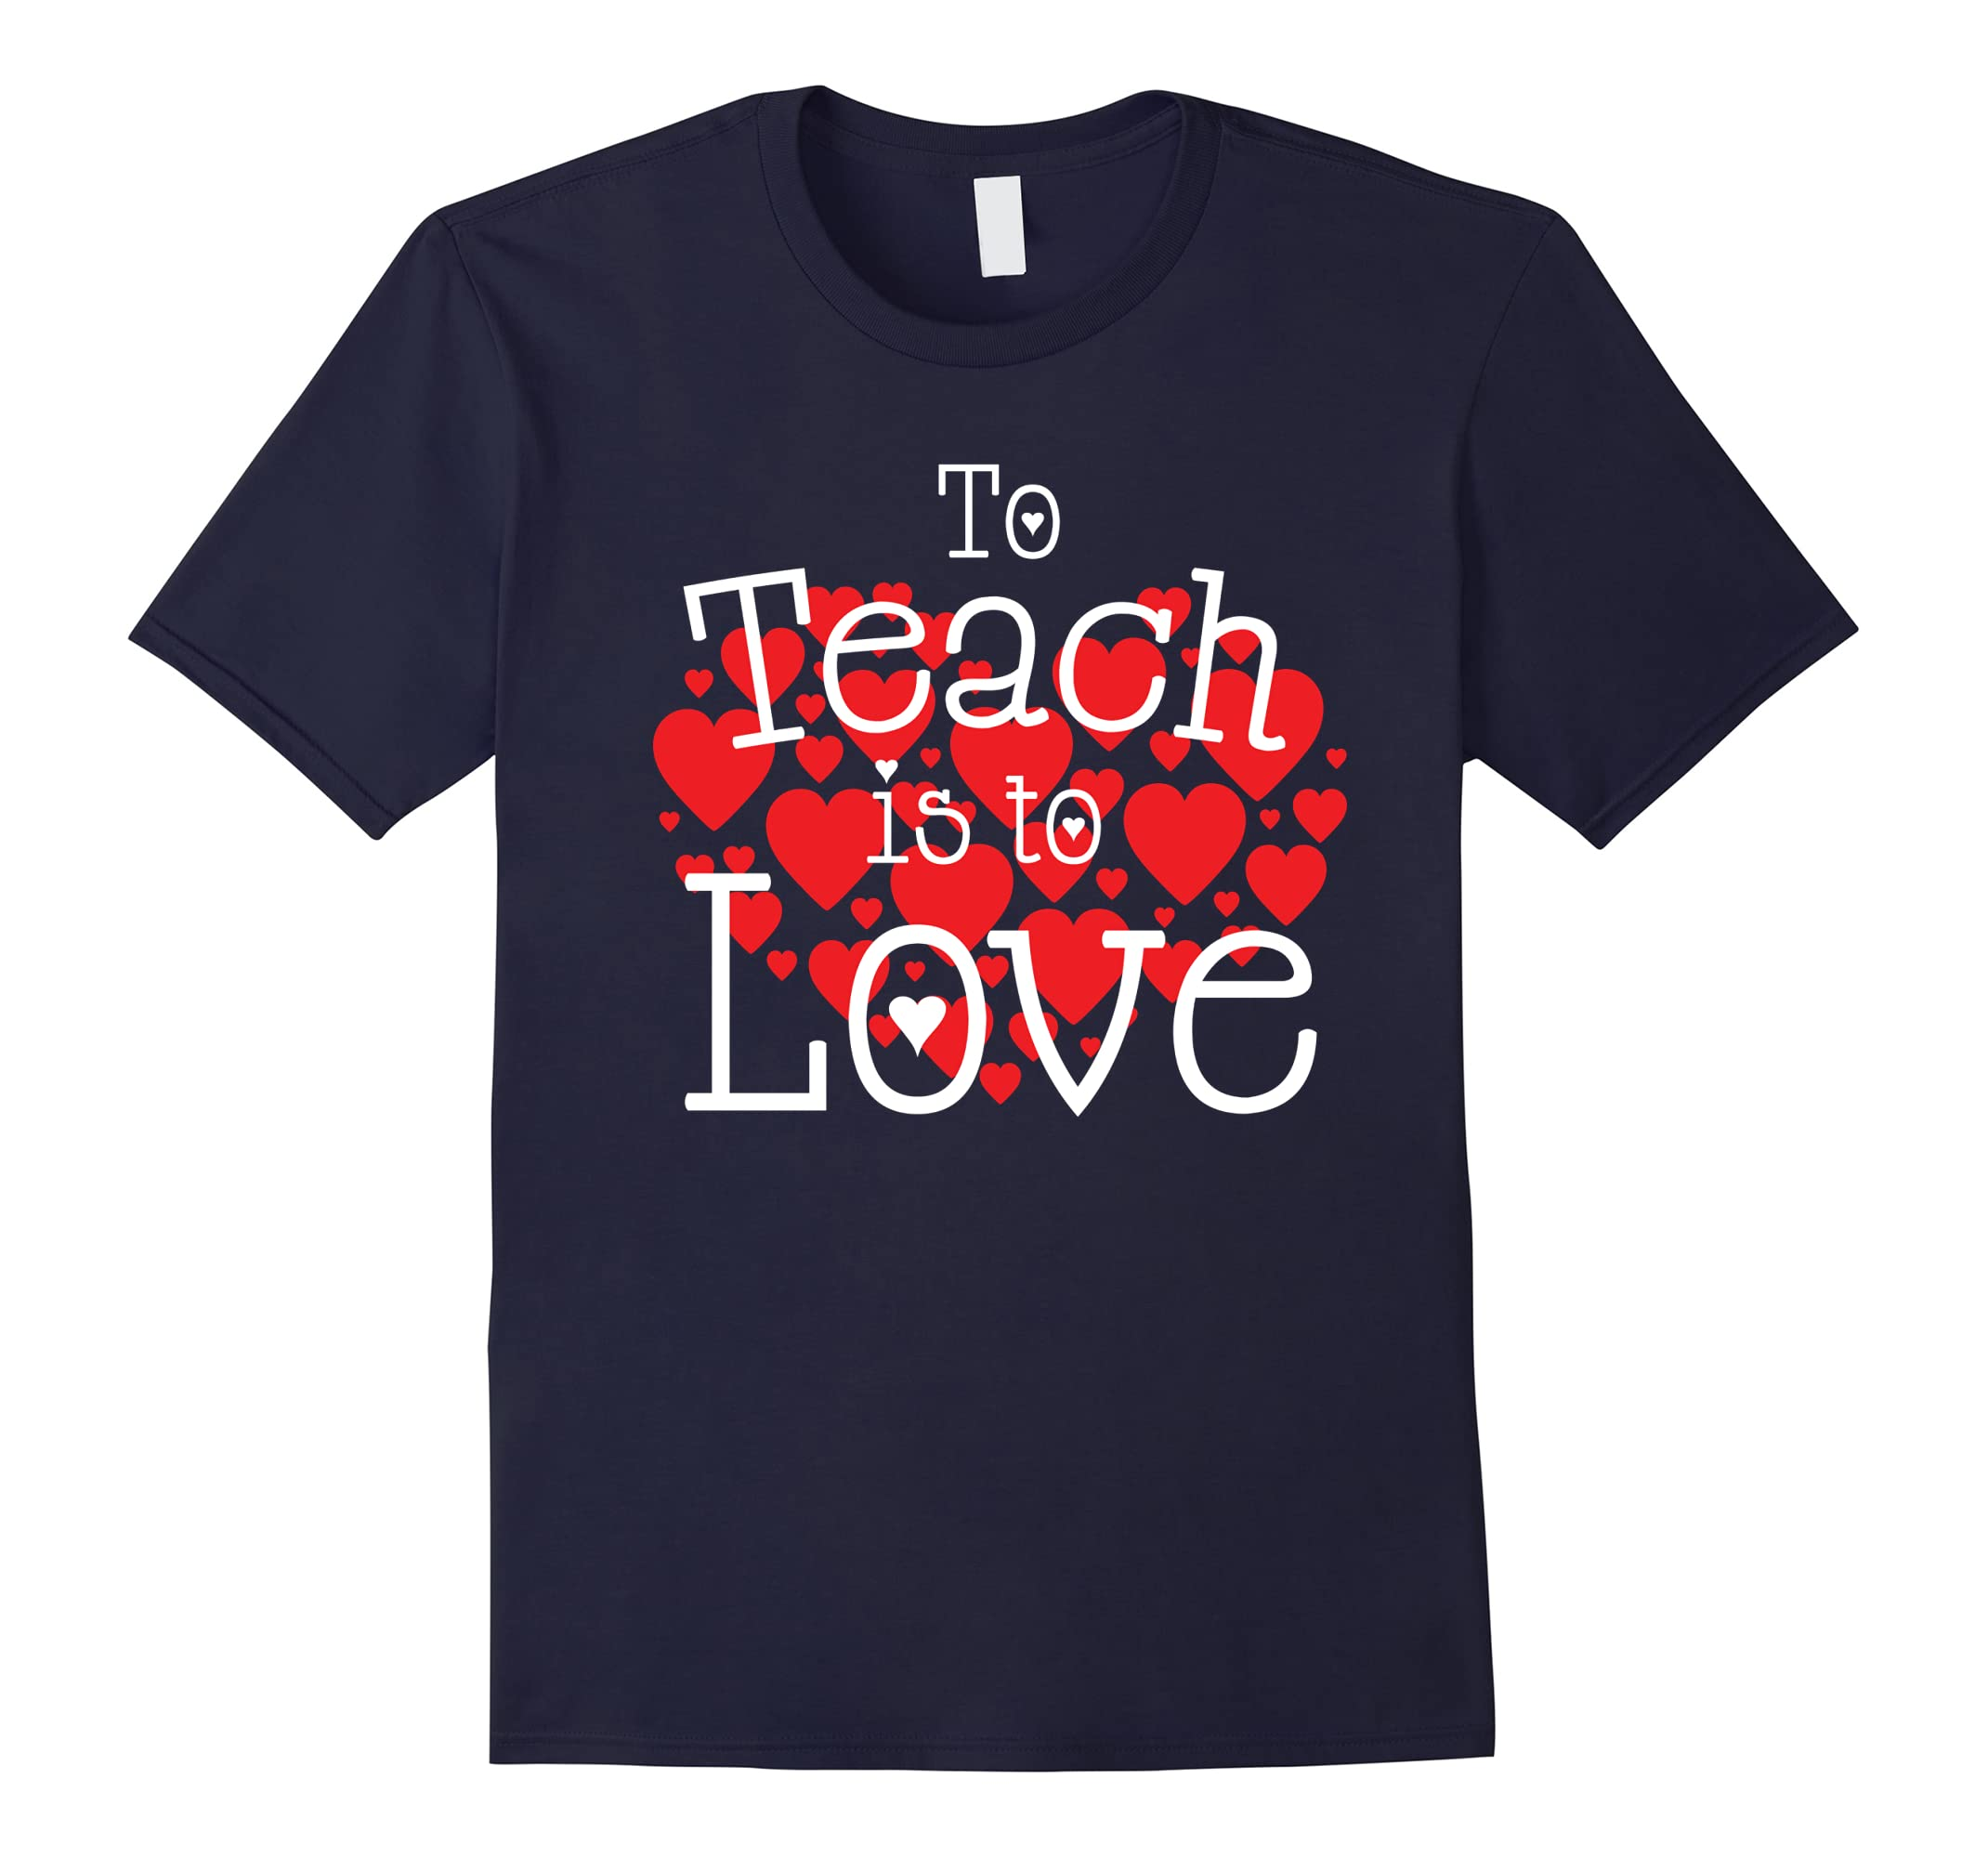 'To Teach is to Love' Cute Valentine's Day Teaching Shirt-ah my shirt one gift